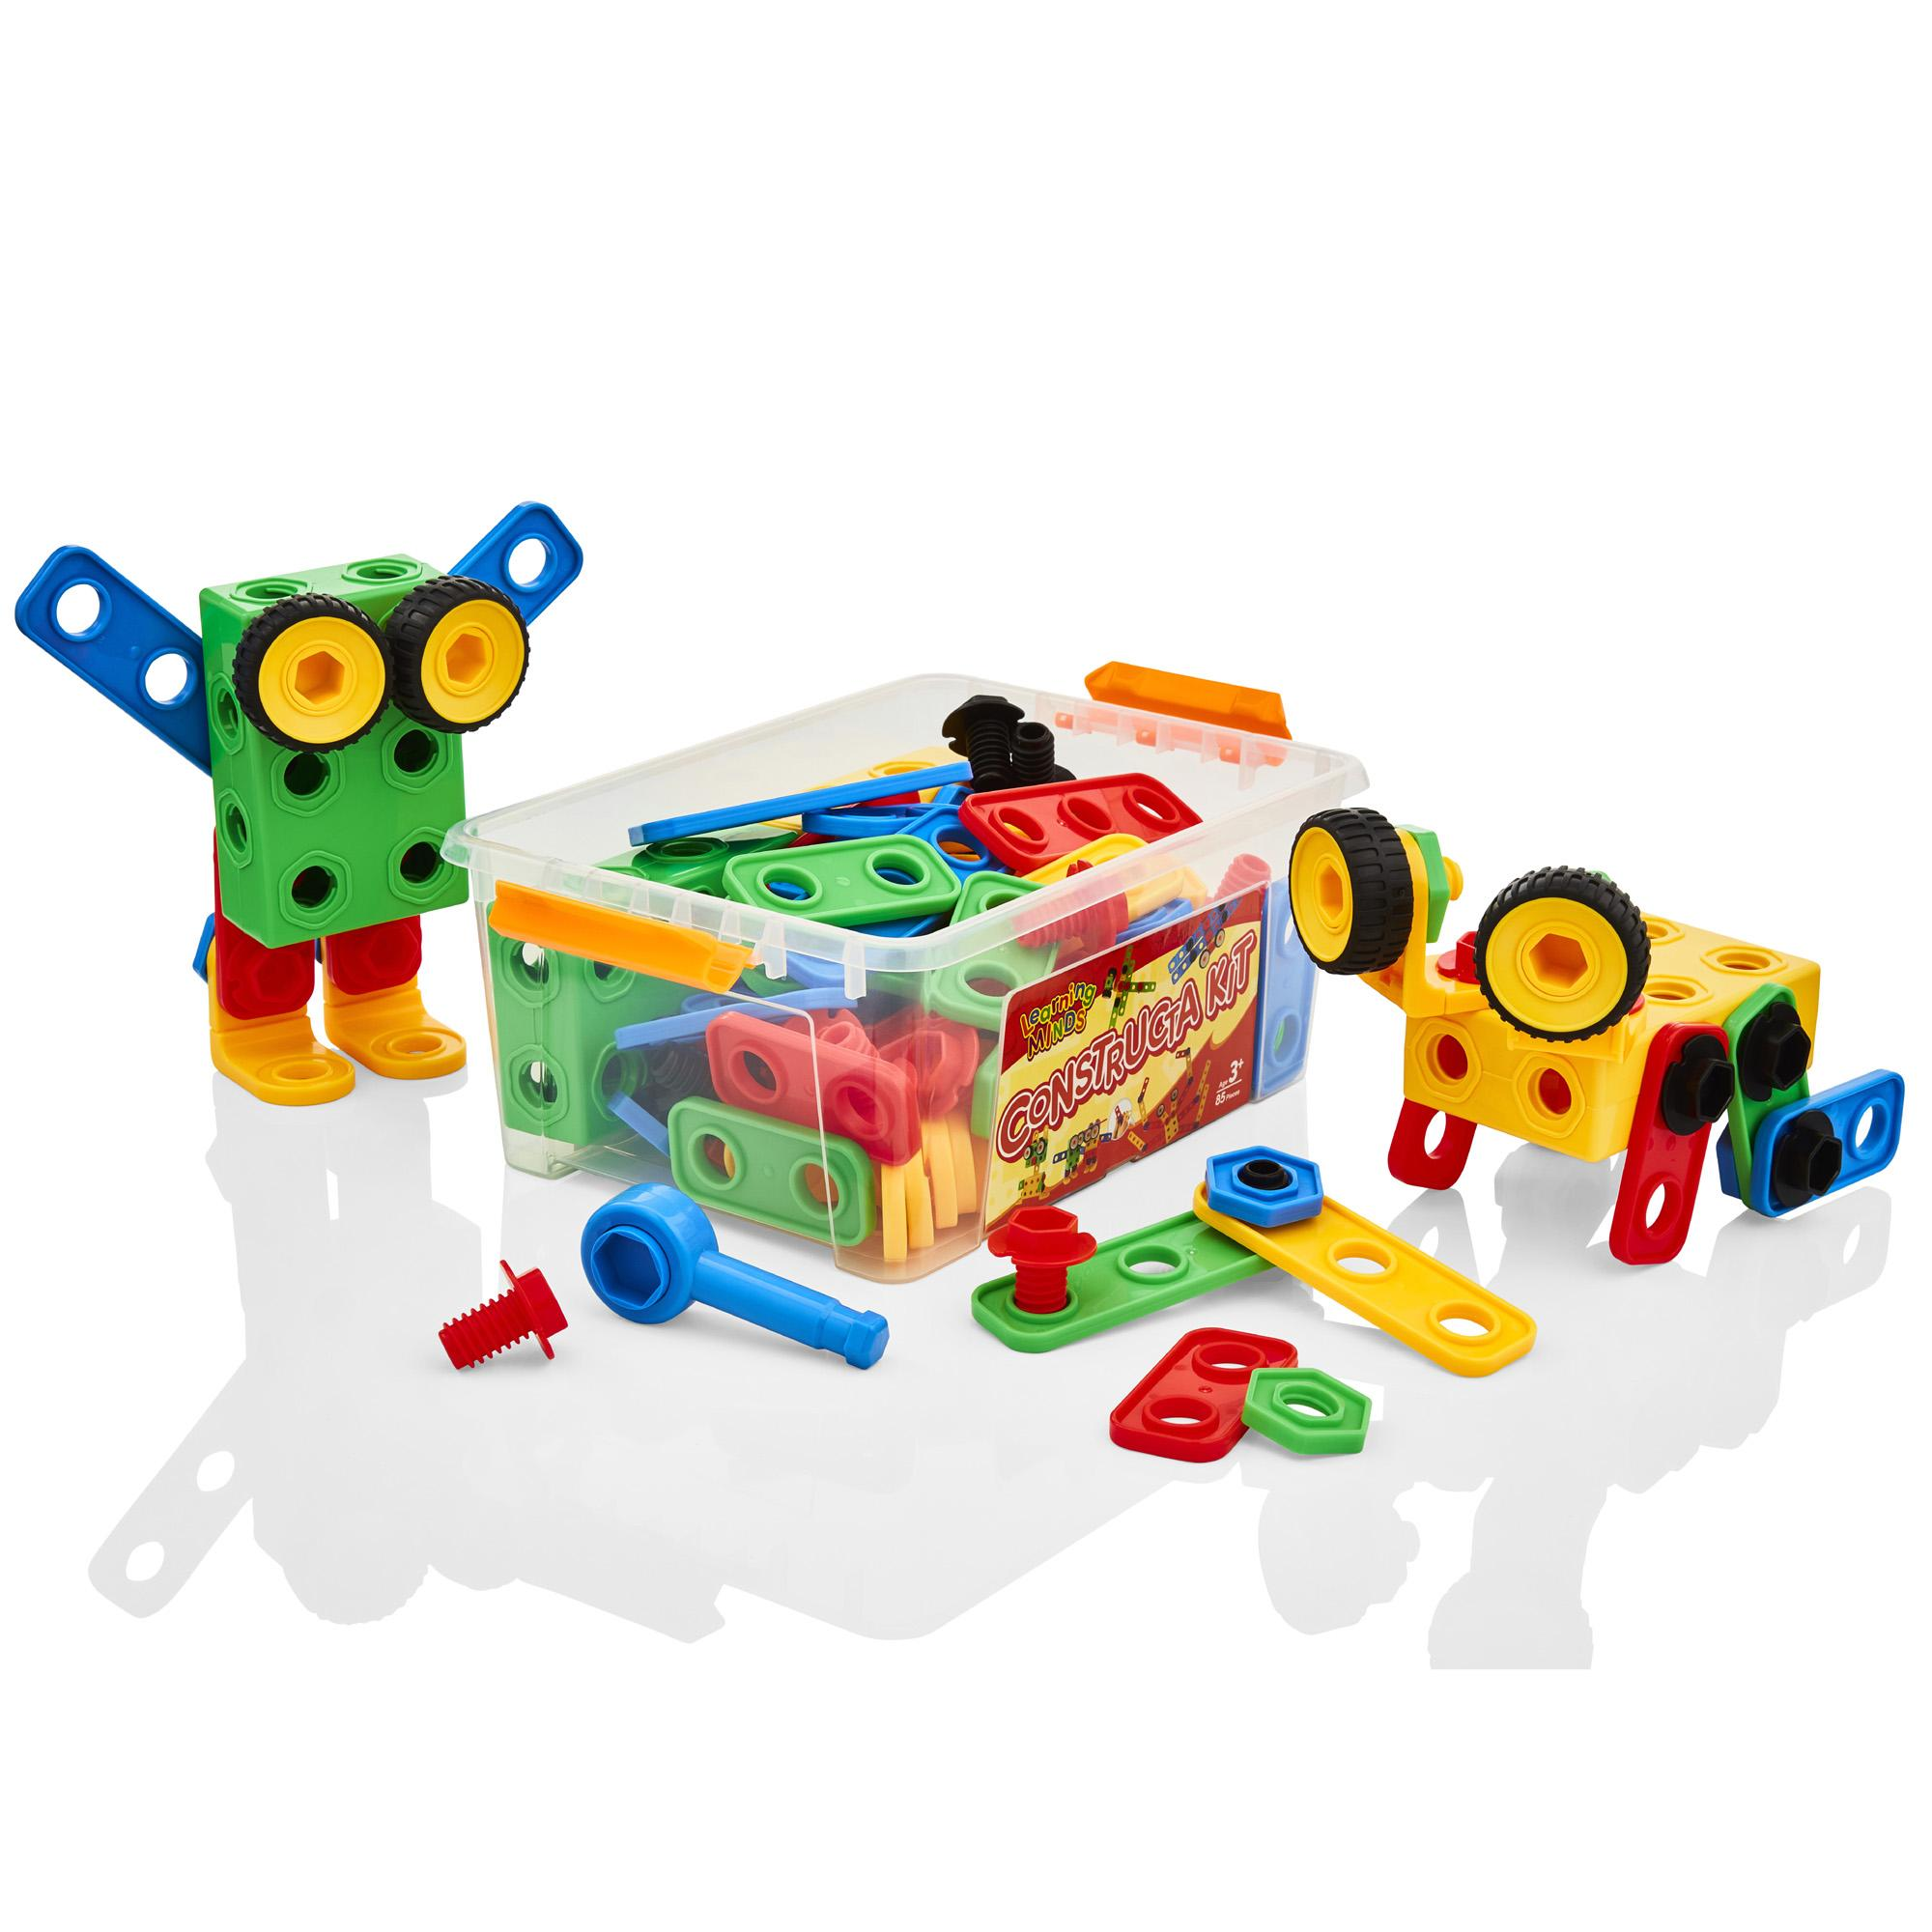 Learning Minds Constructa Kit 85 PiecesWholesale Toys from The